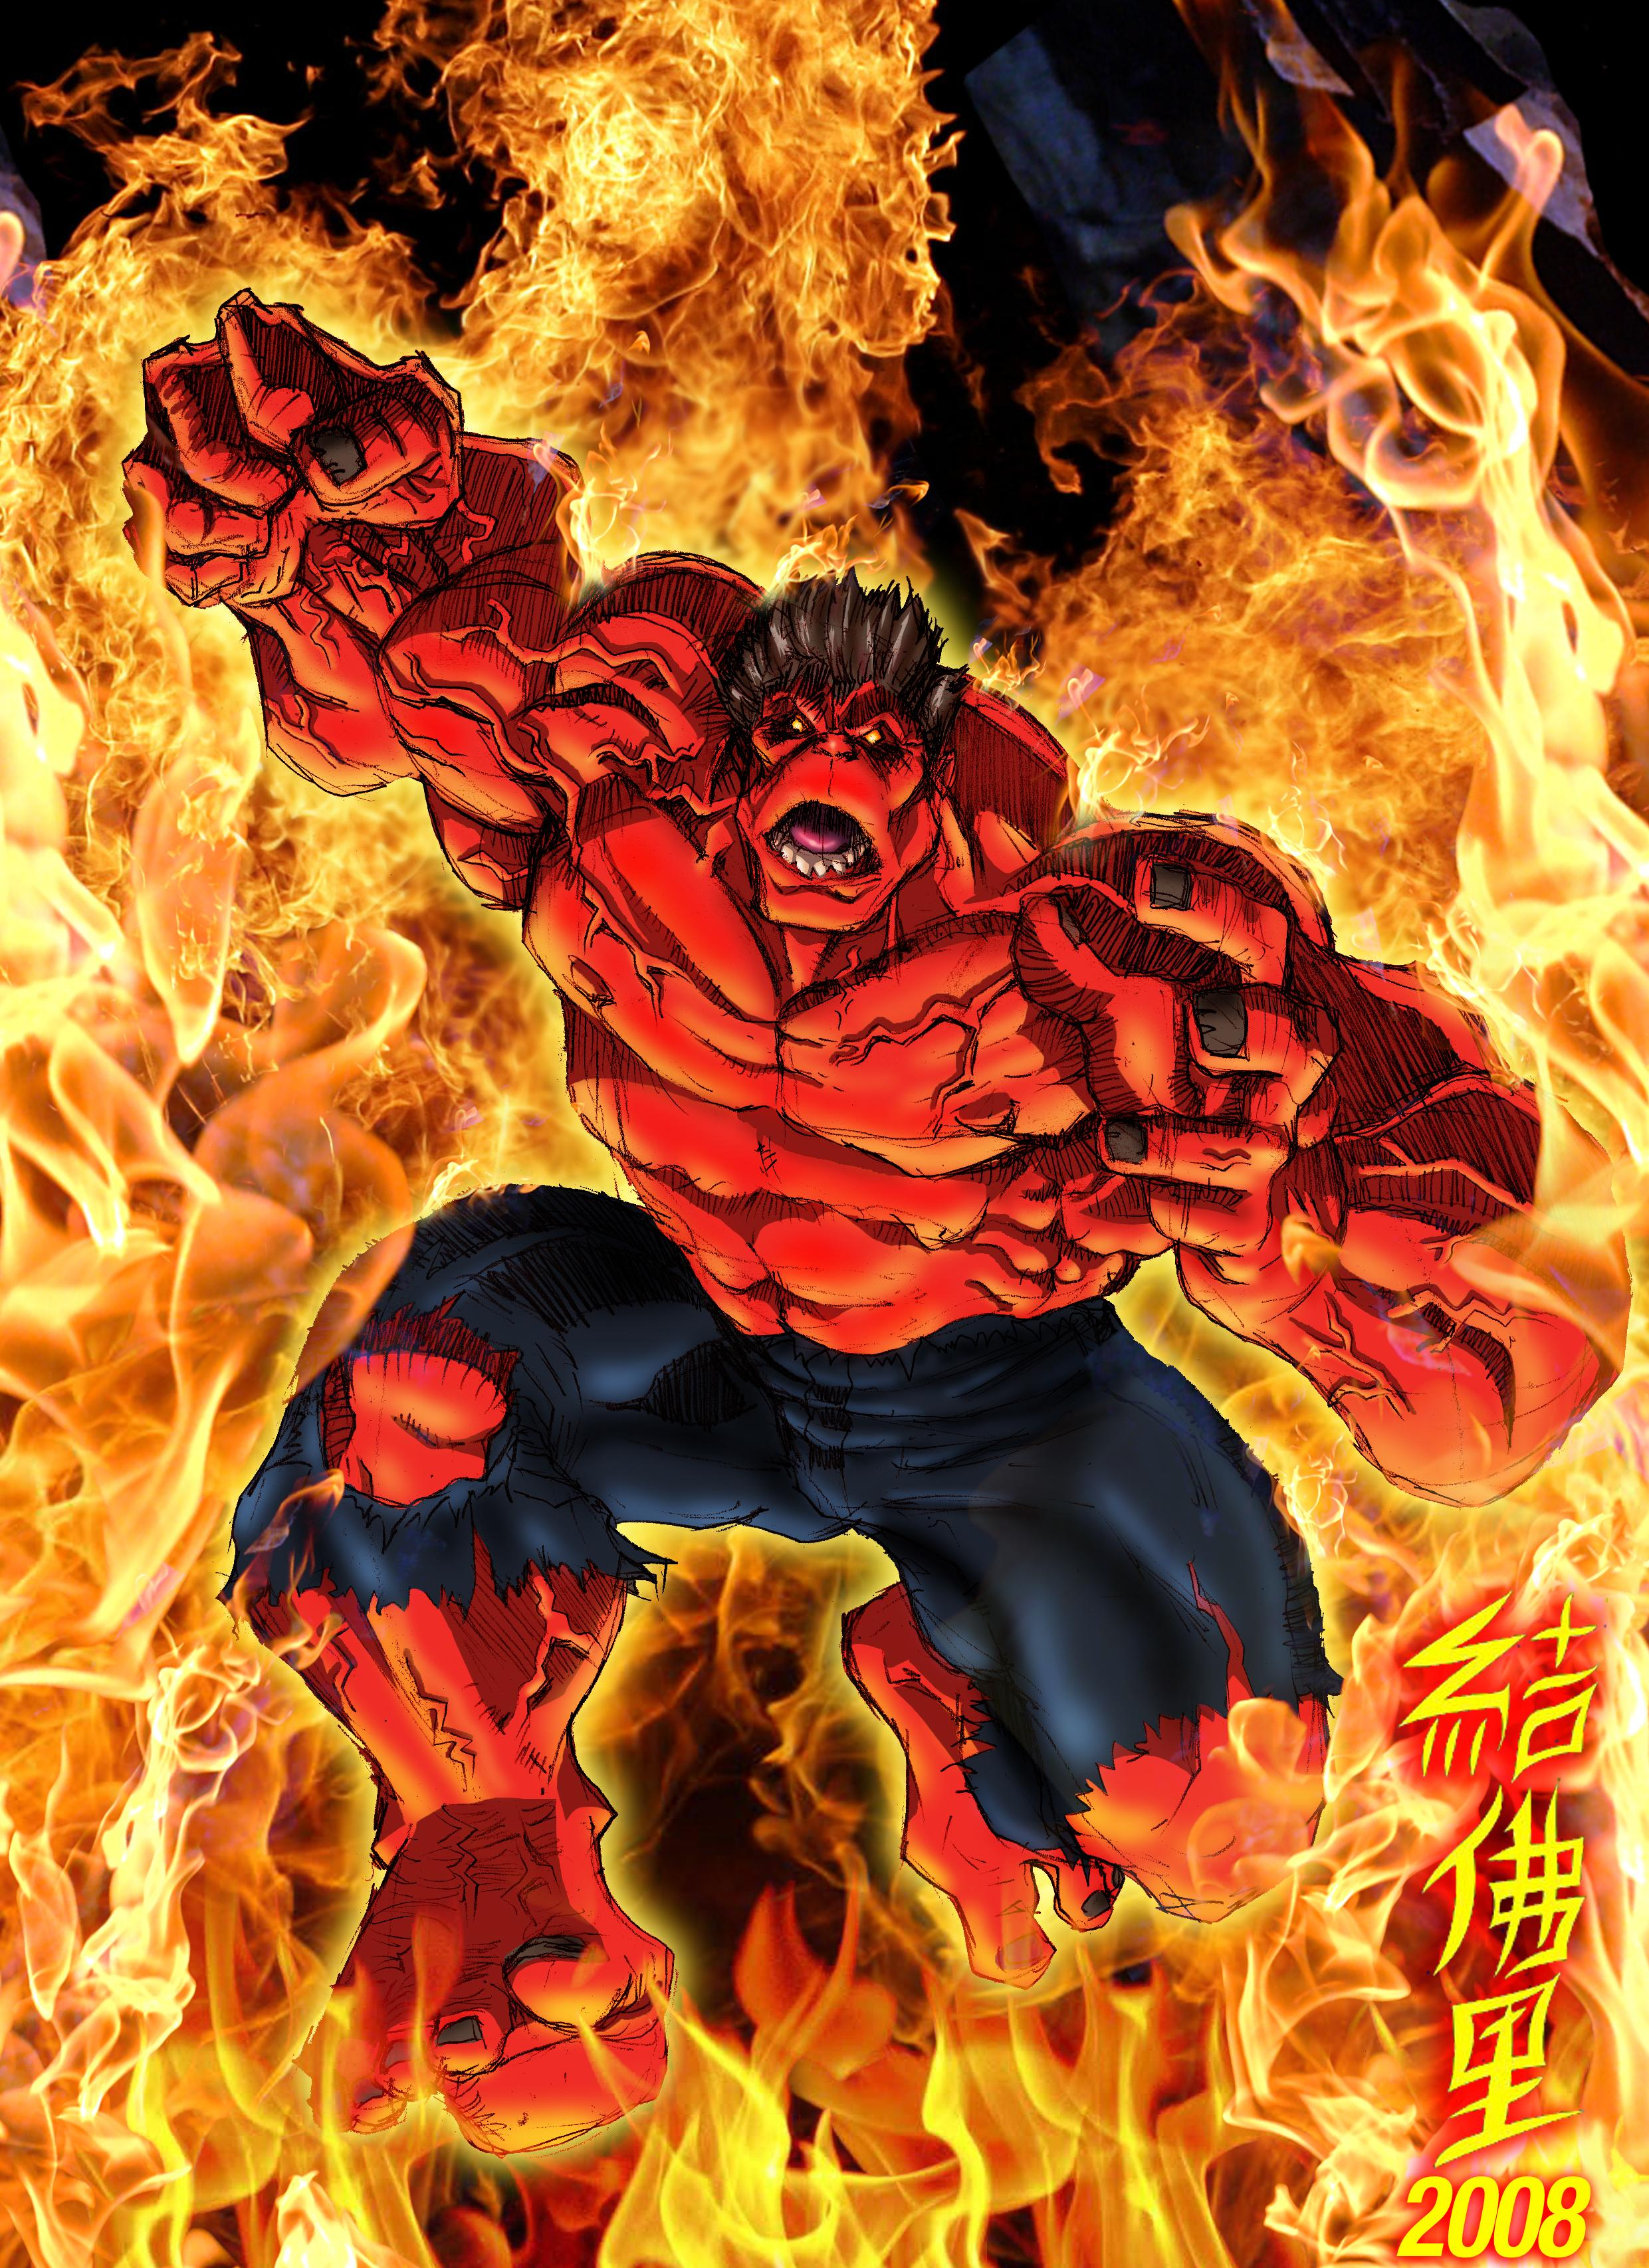 Red hulk battles dreager1 39 s blog page 2 - Pictures of red hulk ...